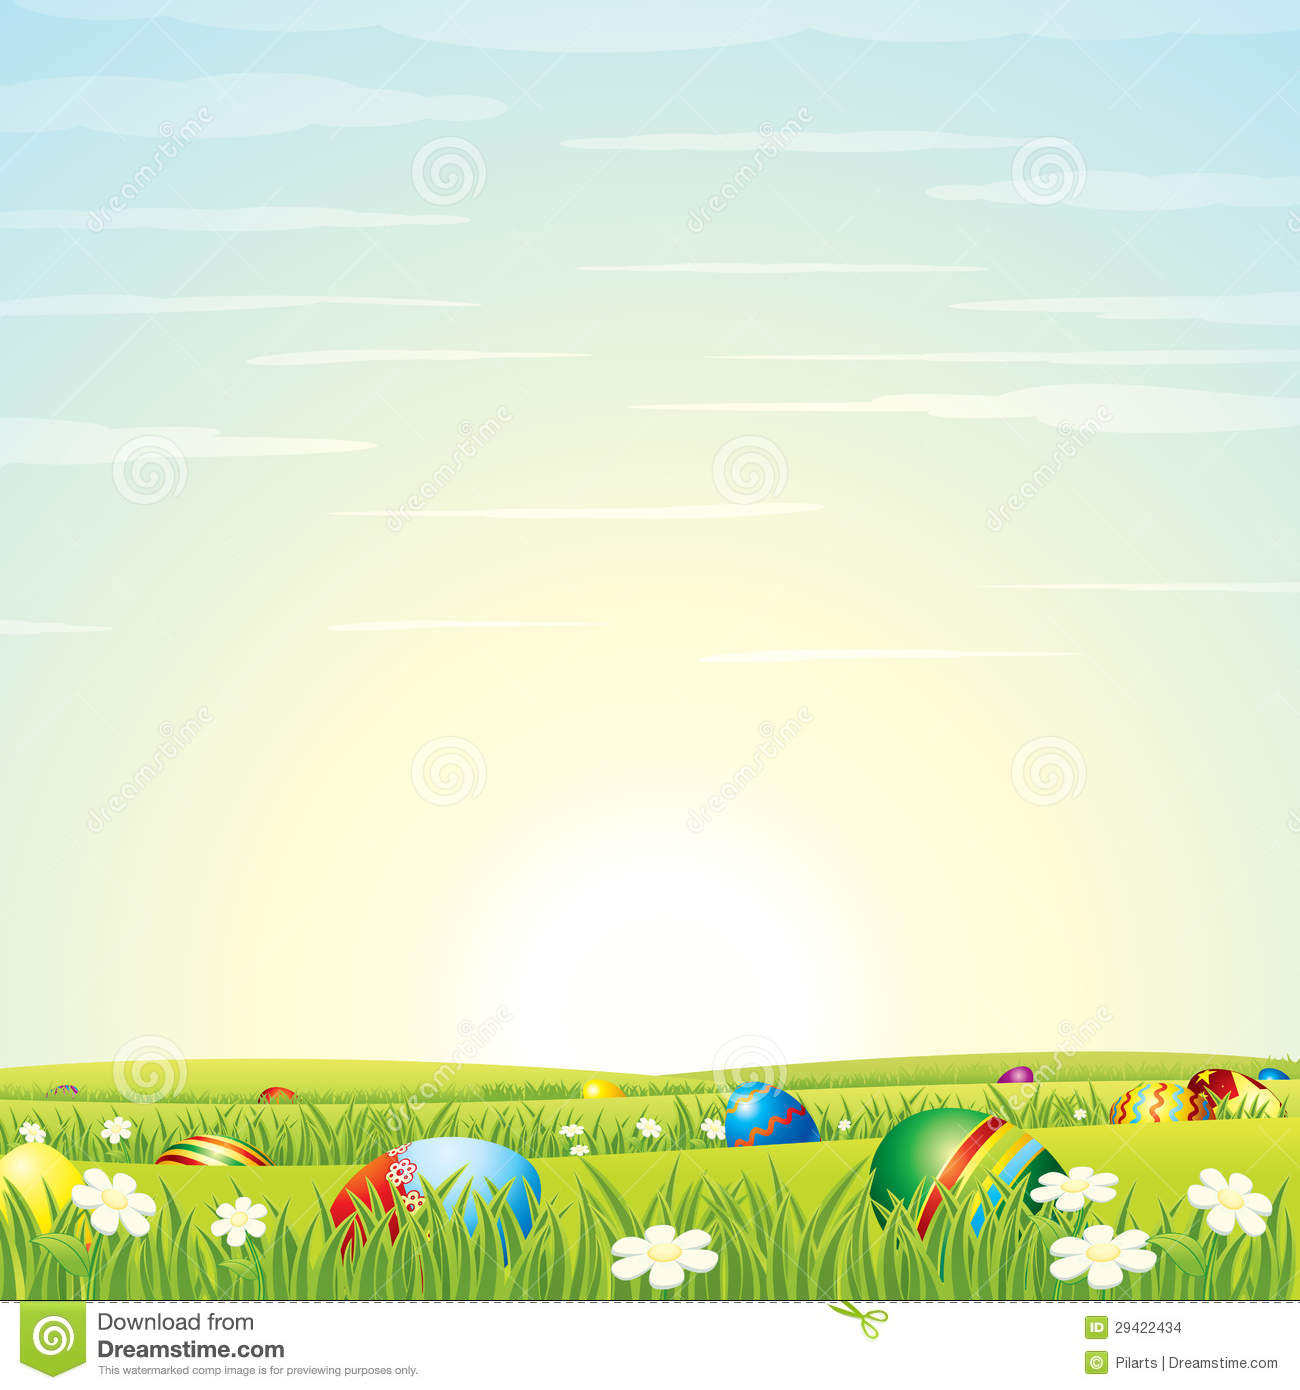 Easter Eggs with Green Grass Background